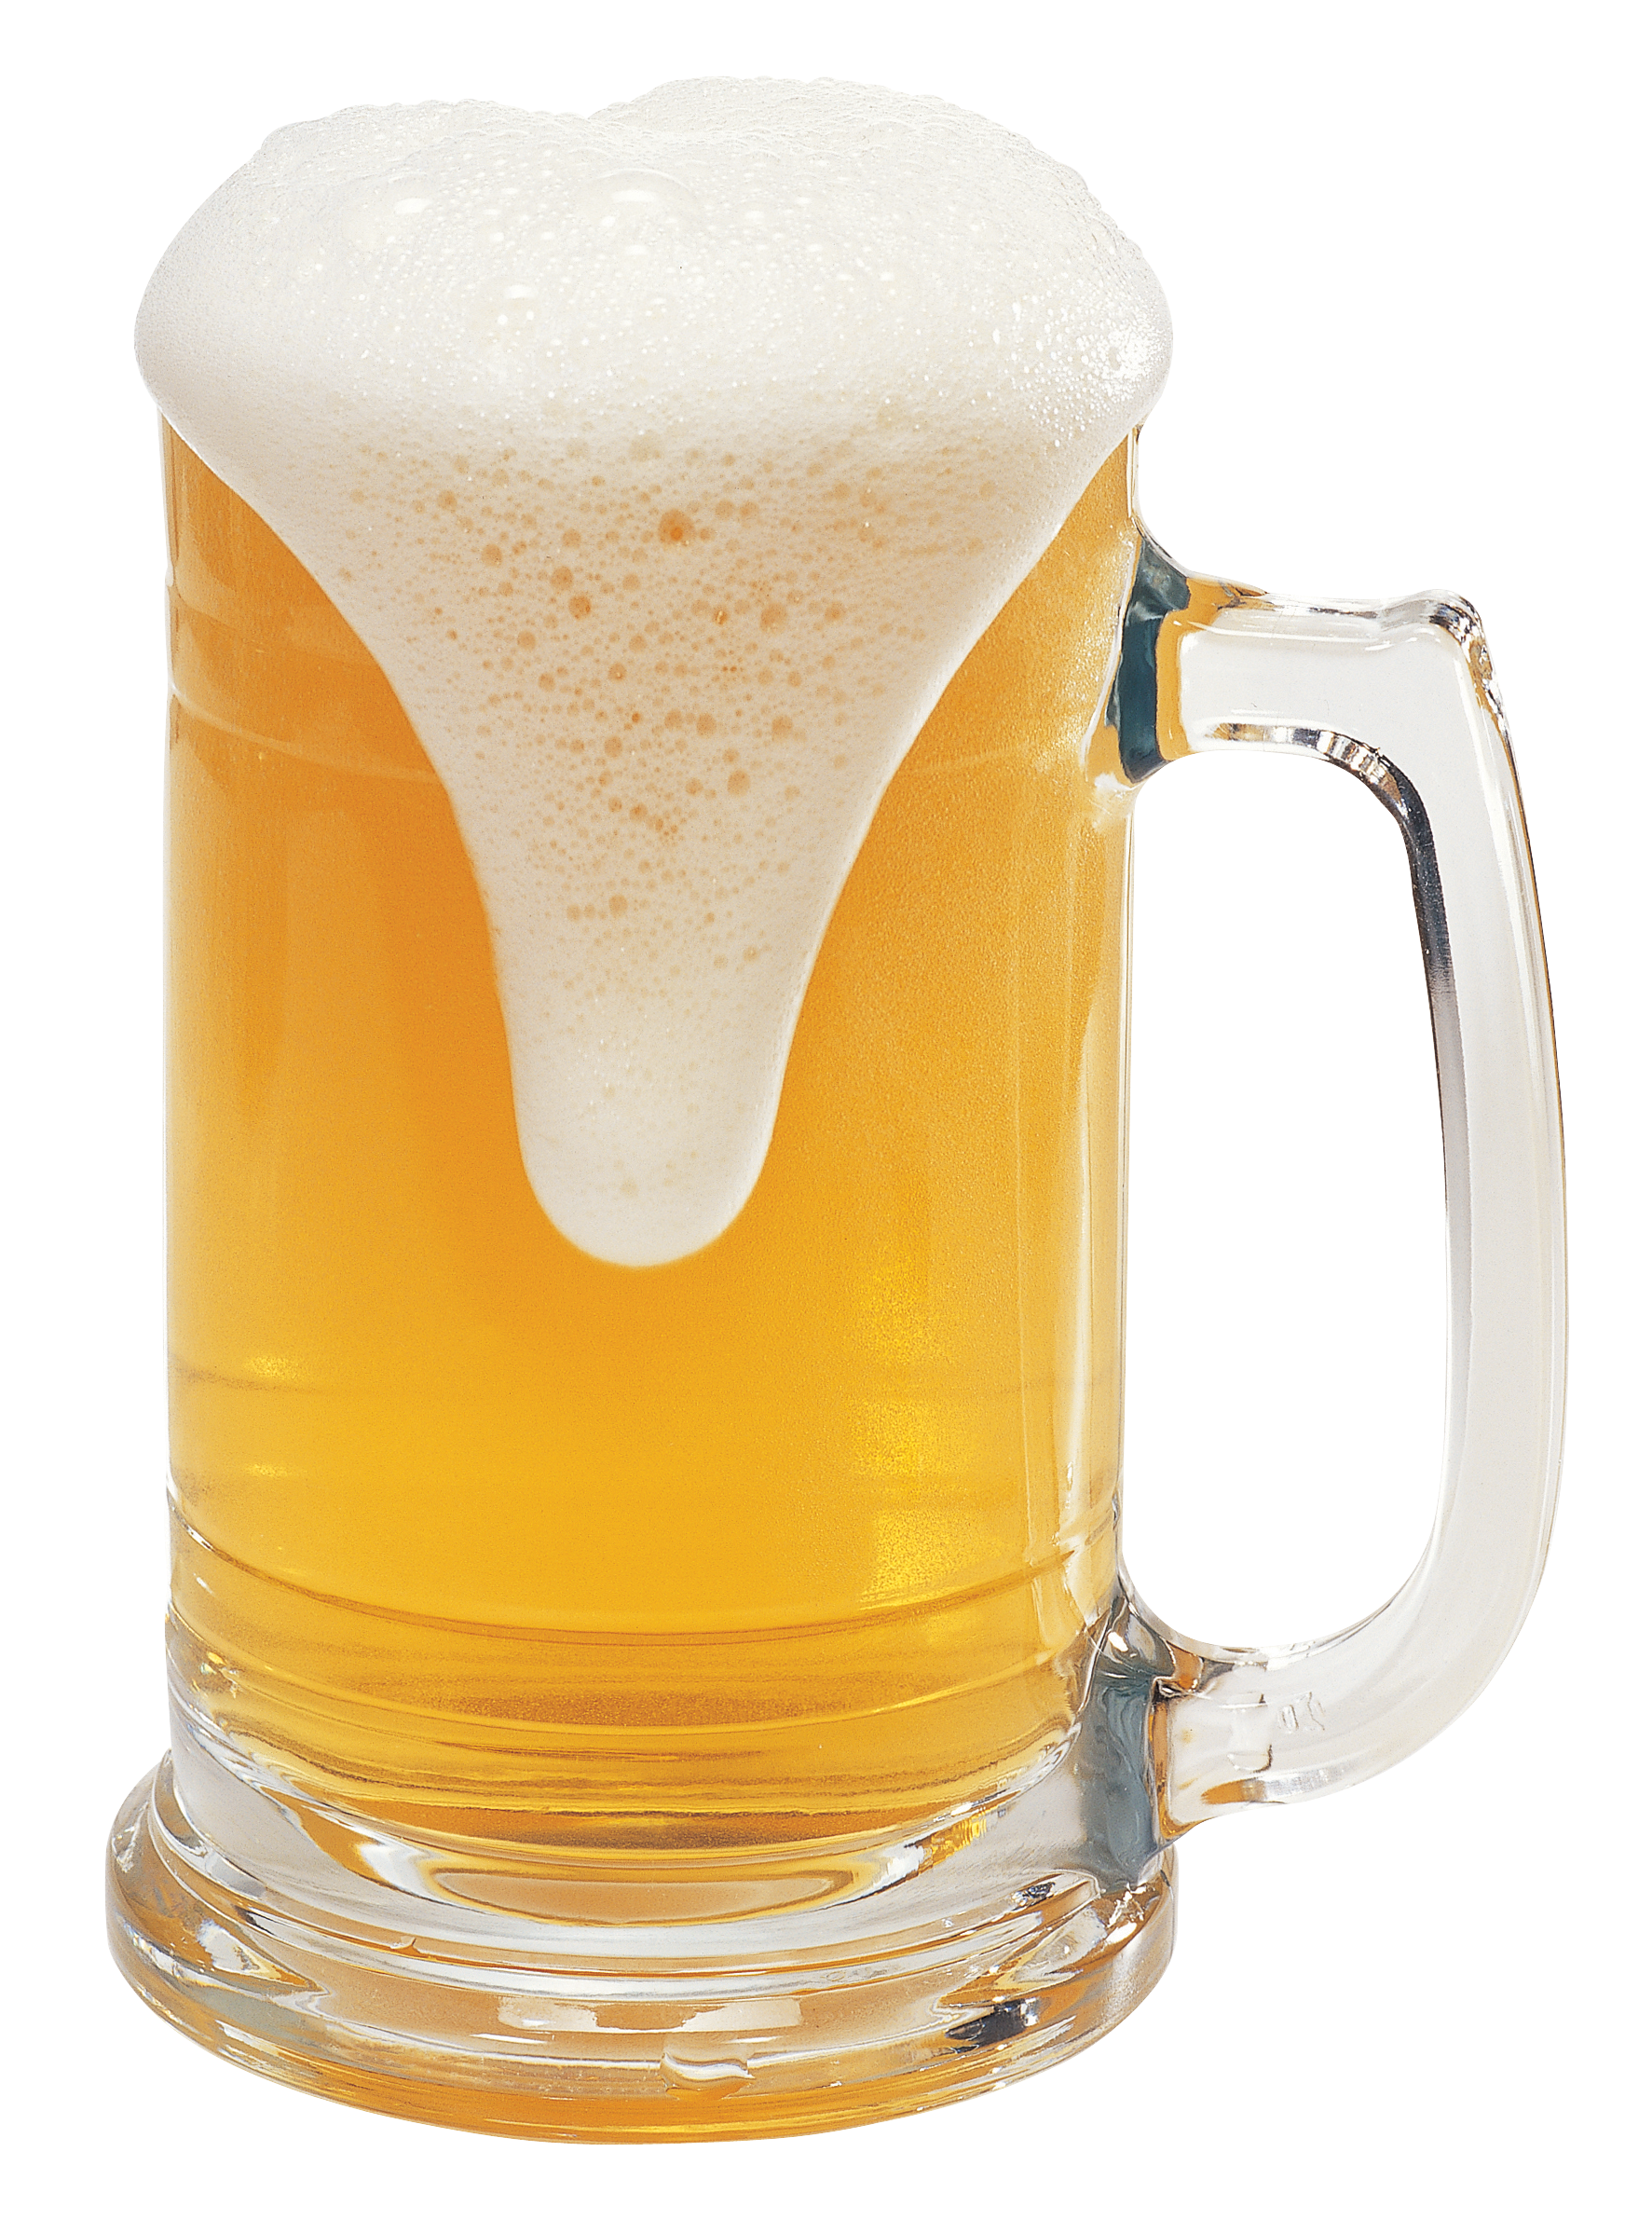 beer mug on the white background free image https pixy org licence php